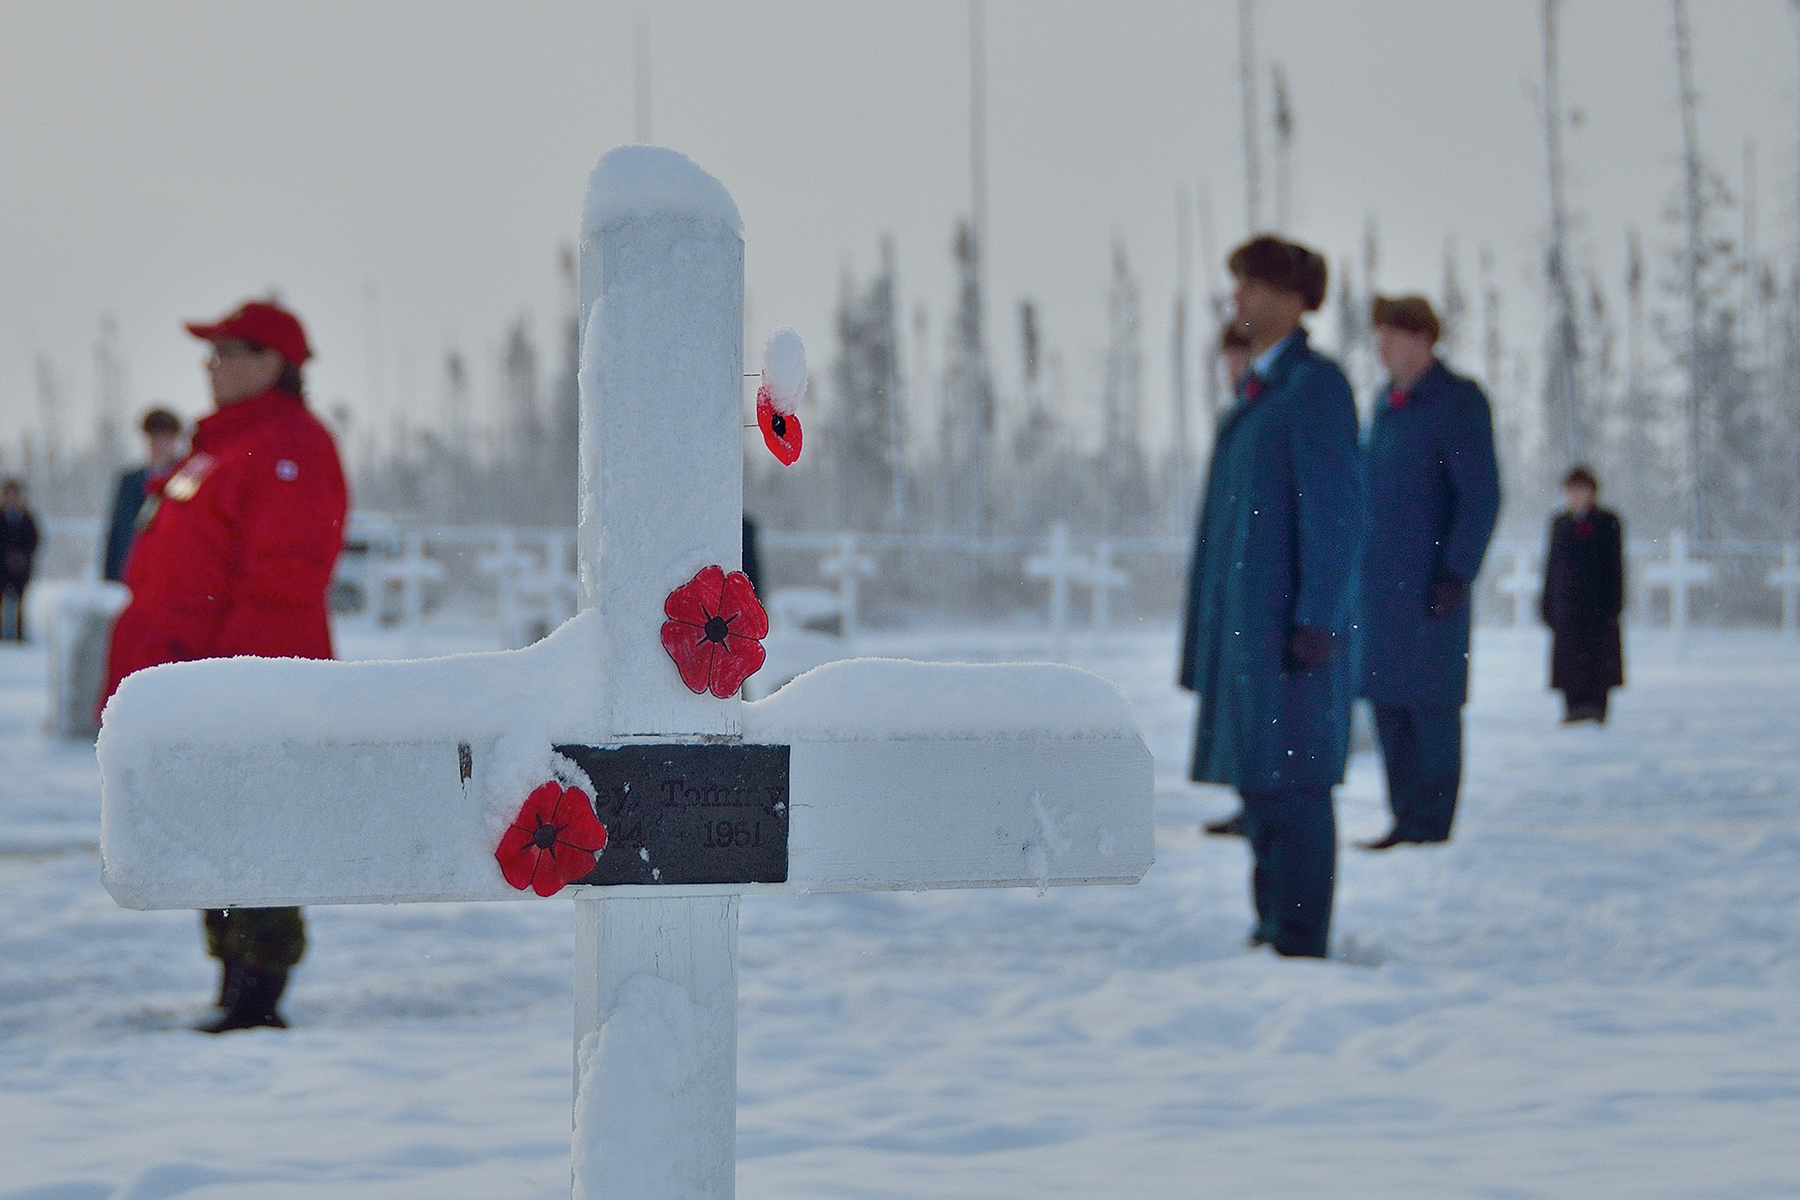 A cross adorned with poppies and new-fallen snow is one of many in 5 Wing Goose Bay, Newfoundland and Labrador's Commonwealth Cemetery, watched over by wing personnel and members of 5 Canadian Ranger Patrol Group during the Remembrance Day ceremony held on November 11, 2016. PHOTO: Master Corporal Krista Blizzard